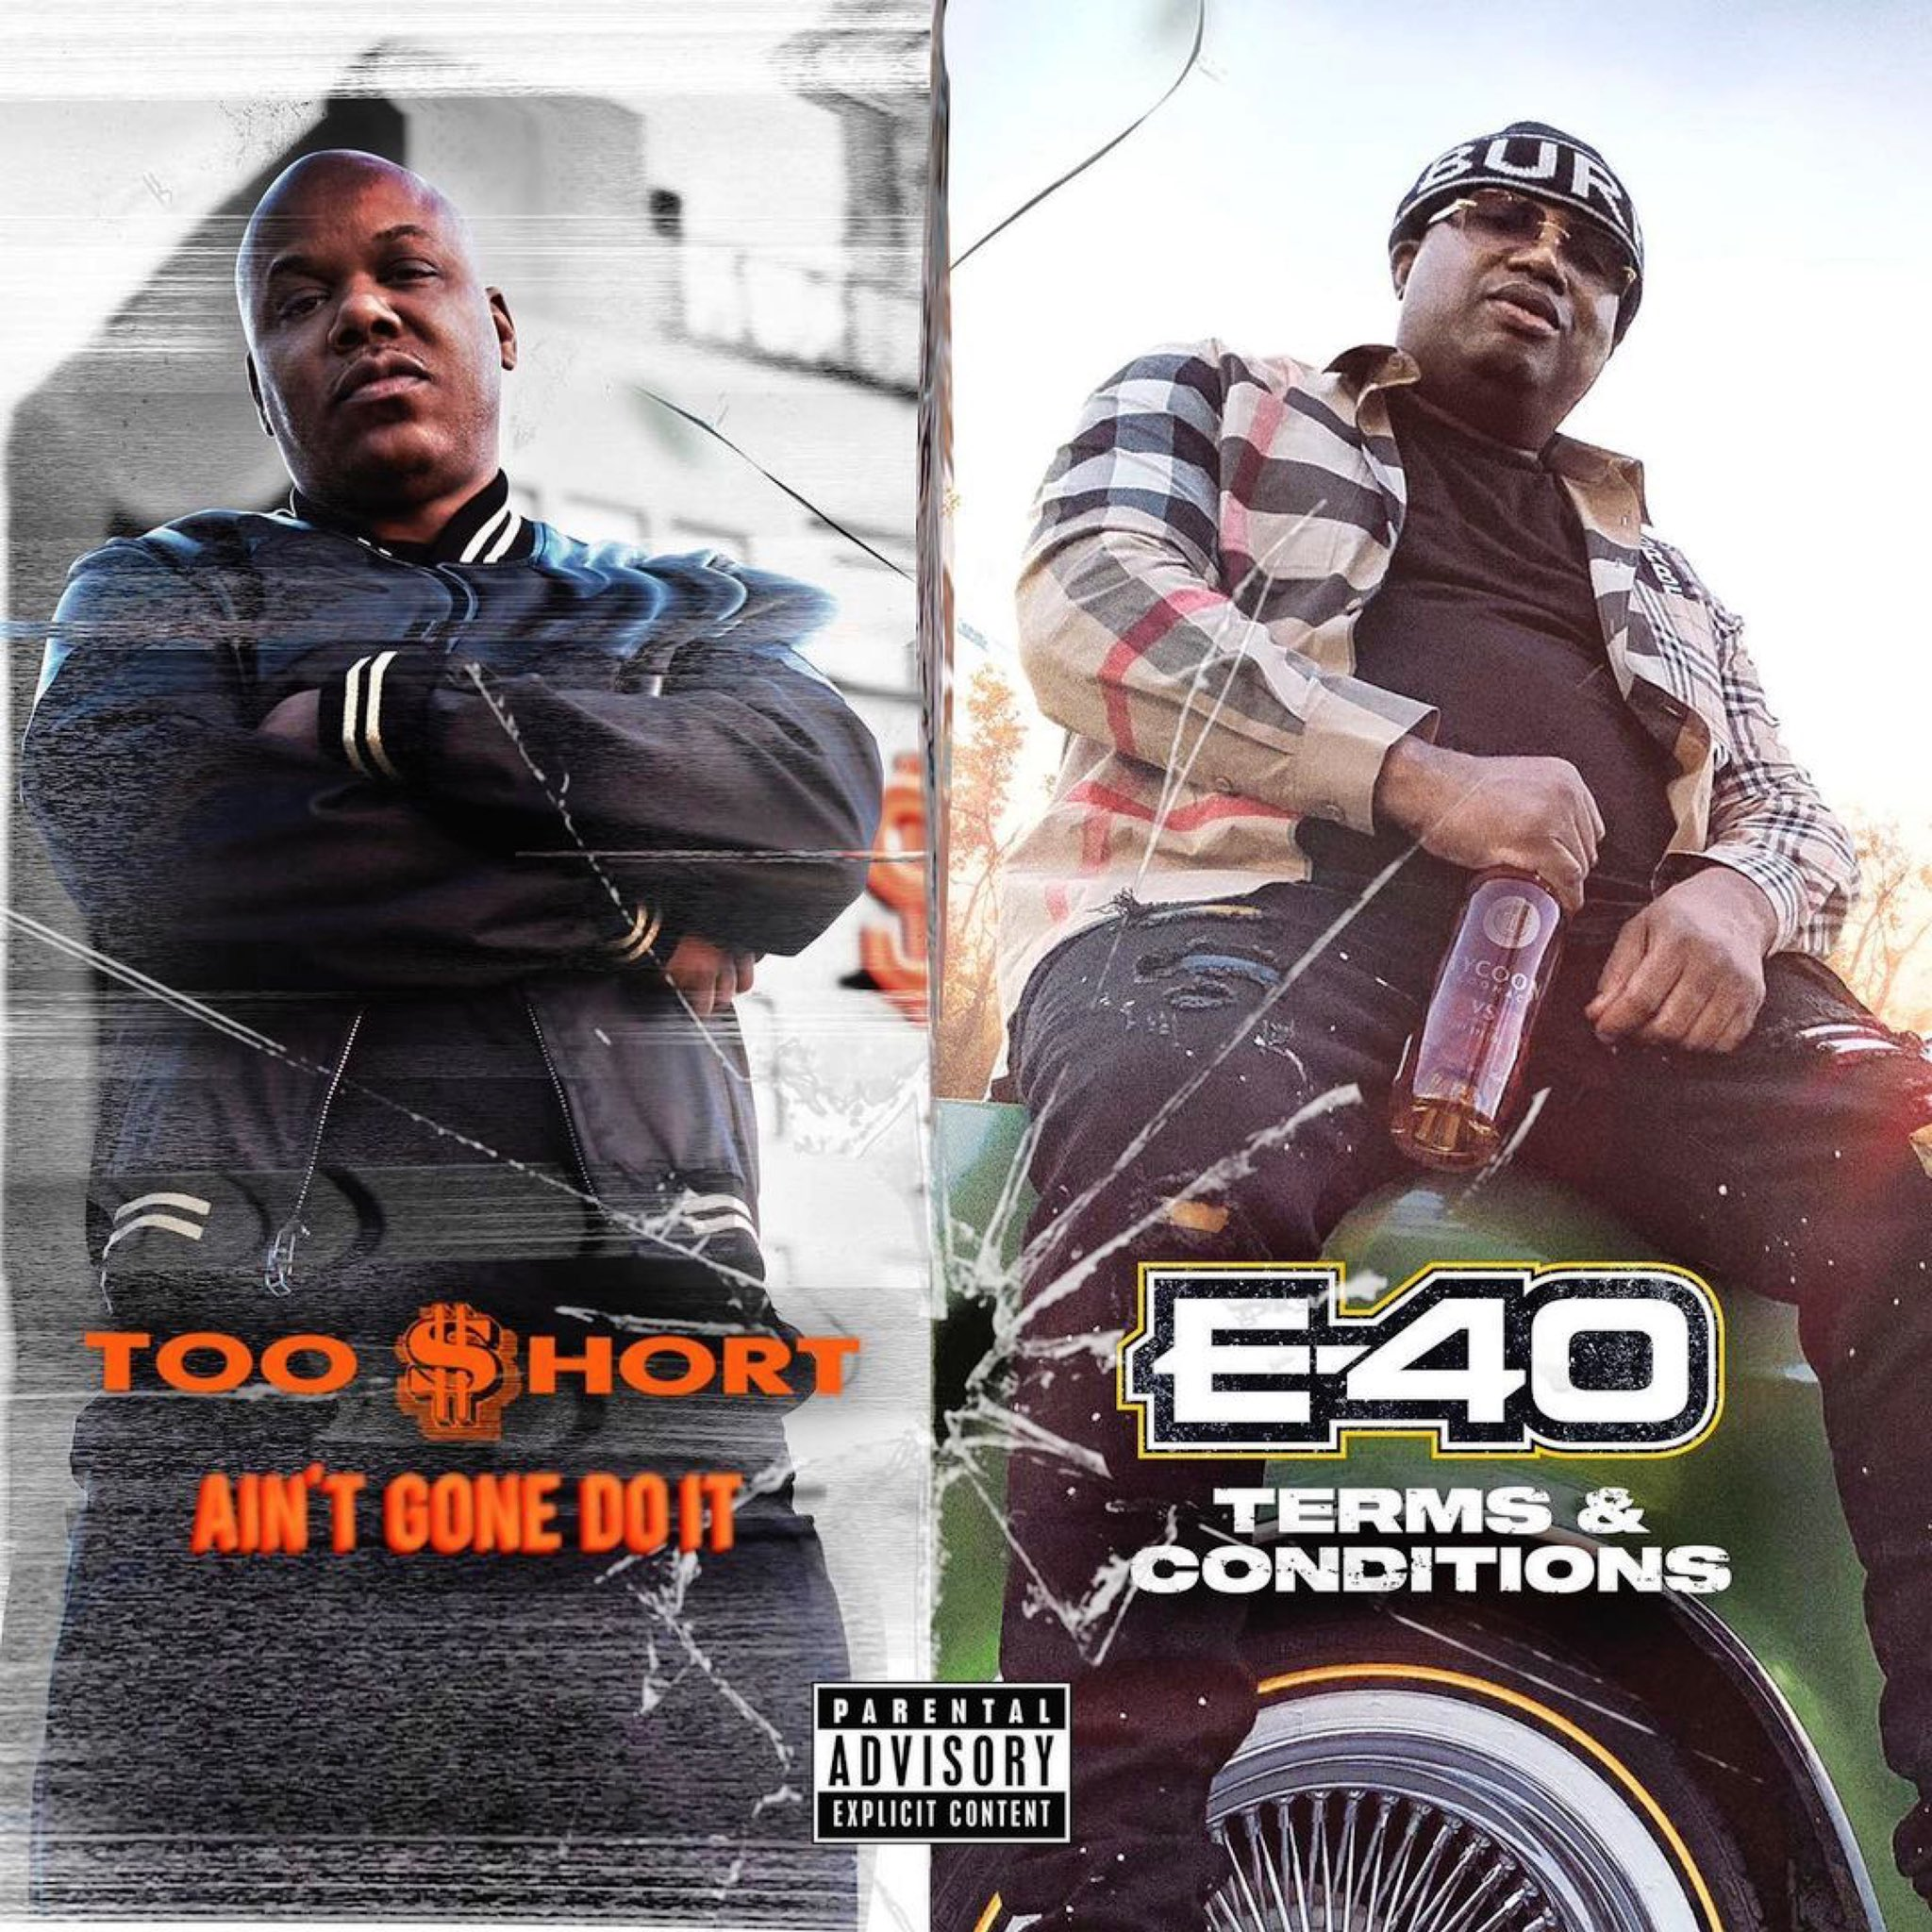 audio review : Ain't Gone Do It | Terms And Conditions ( albums ) ... Too Short + E-40